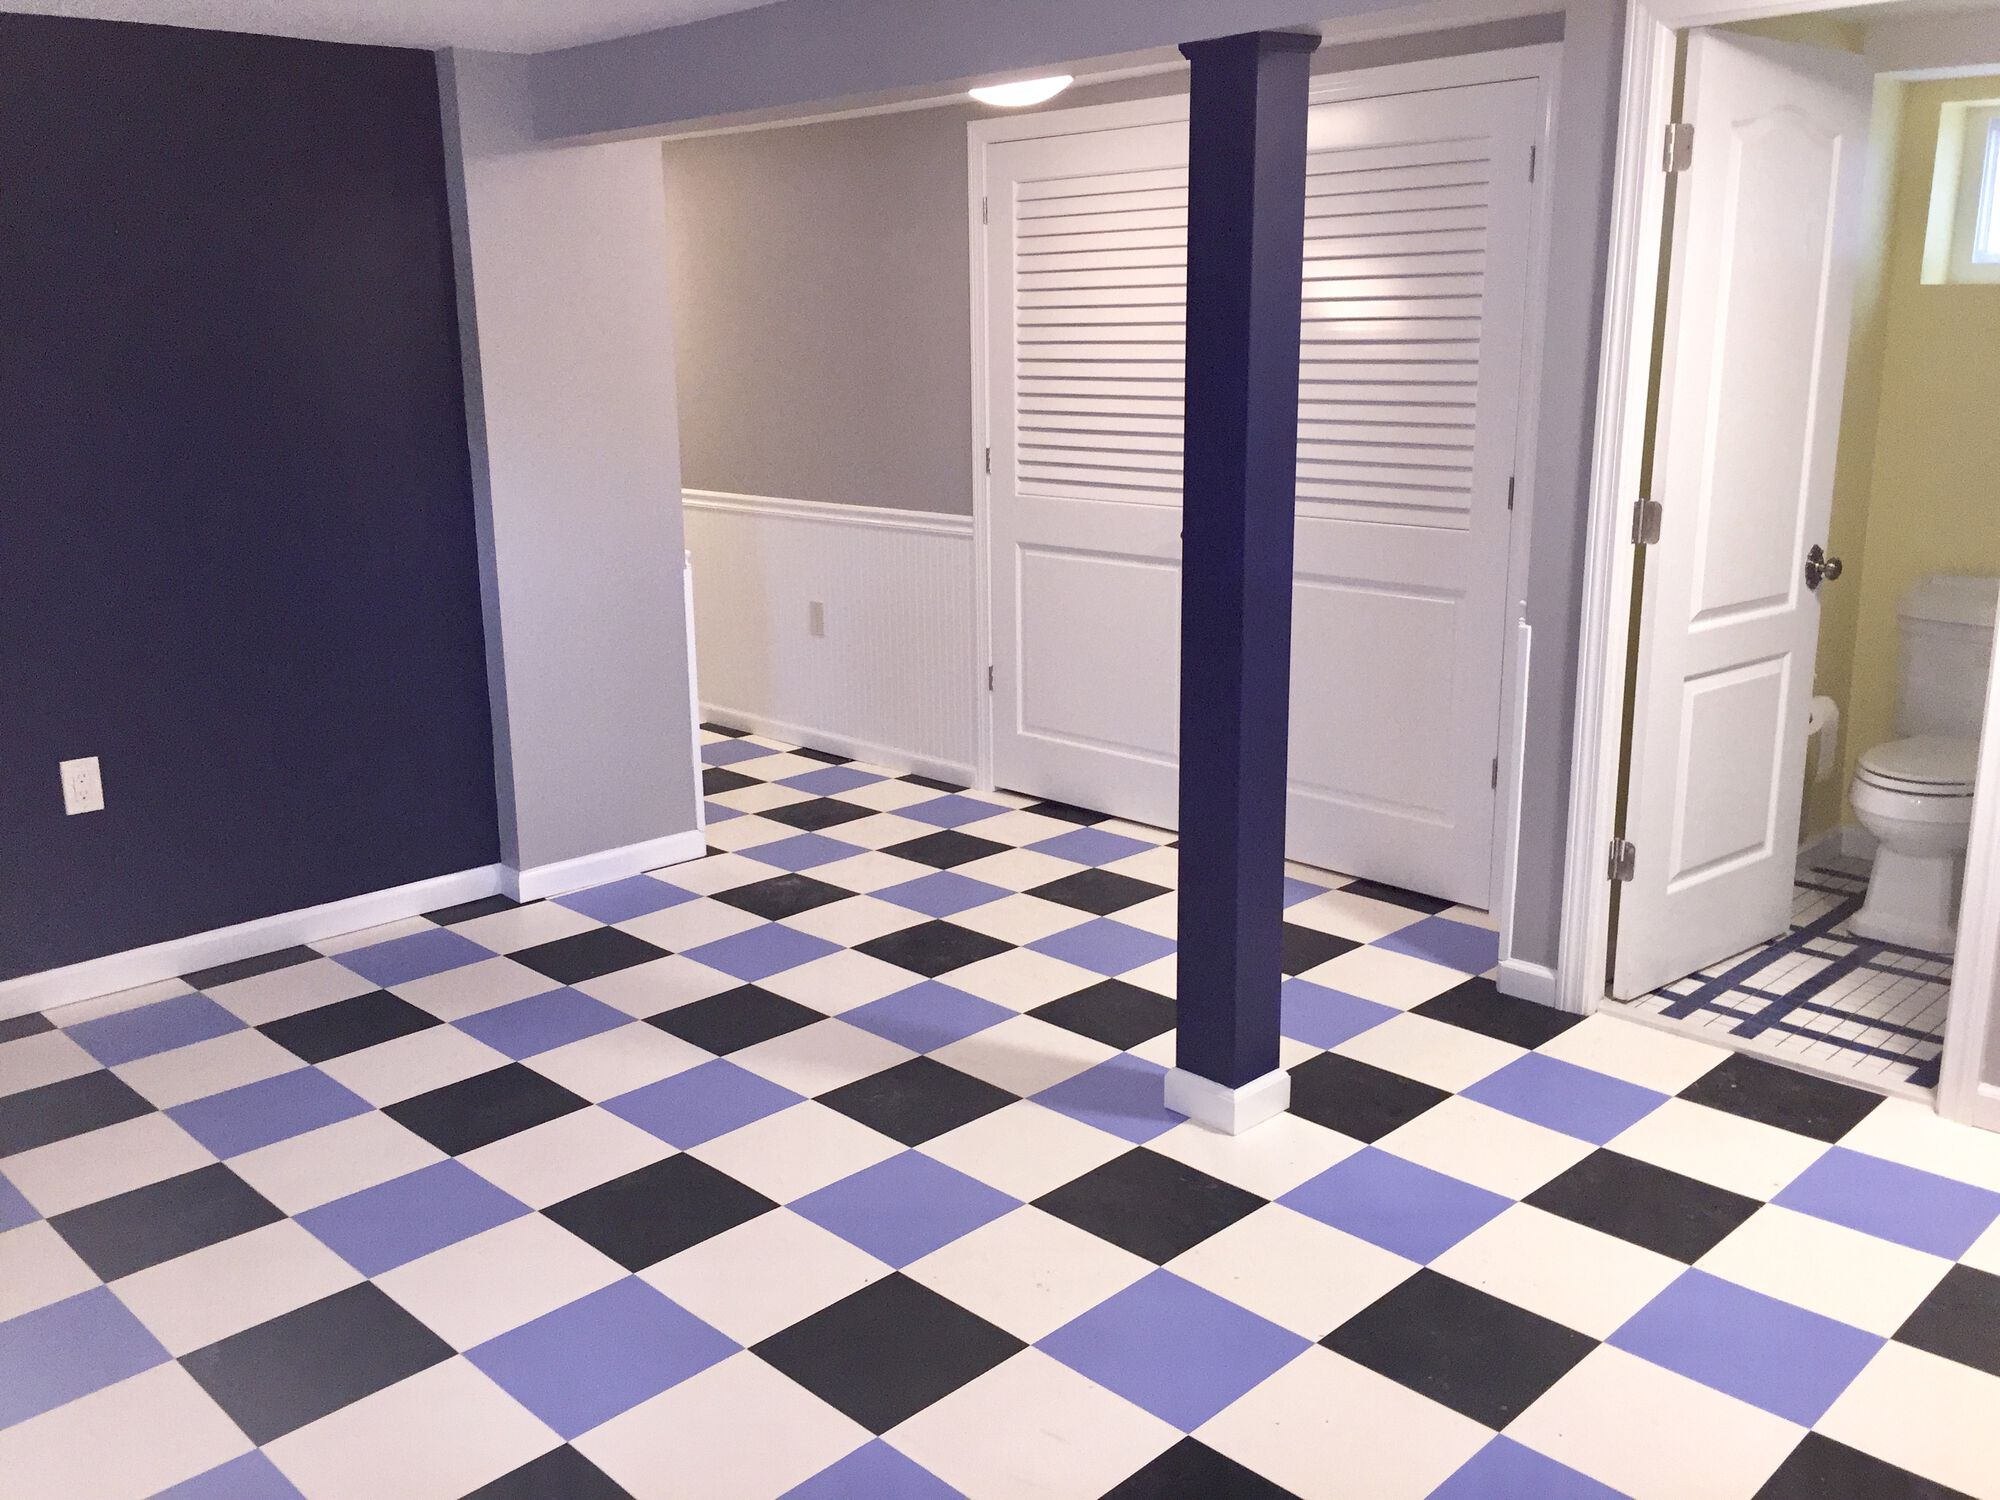 Basement Finishing with Full Bathroom in Jersey City, Hudson County NJ